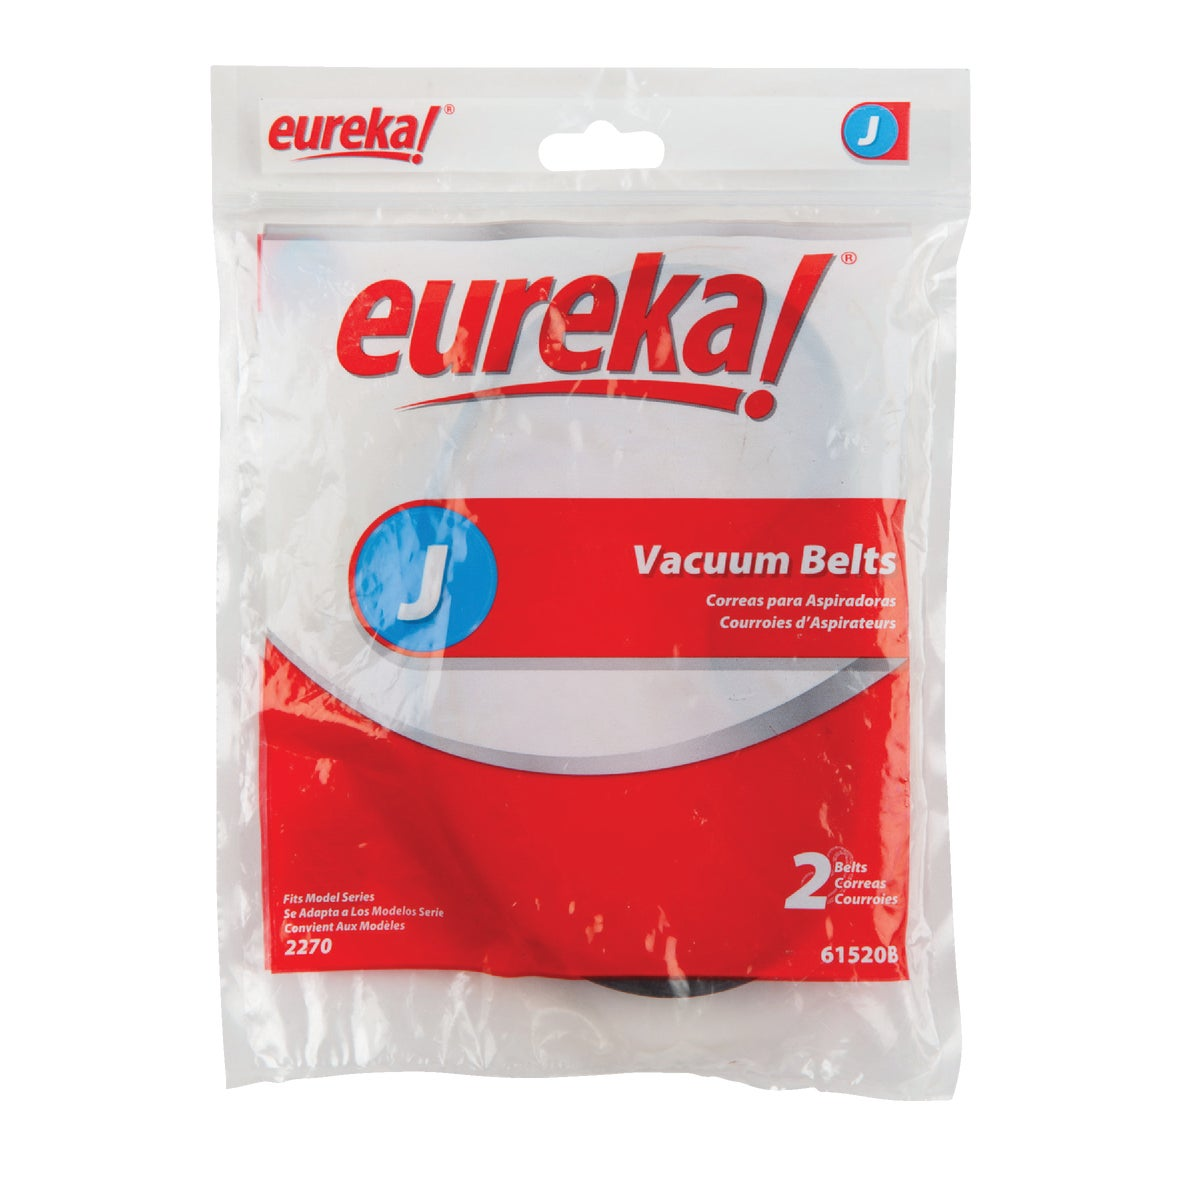 EUREKA STYLE J VAC BELT - 61520B-12 by Electrolux Home Care